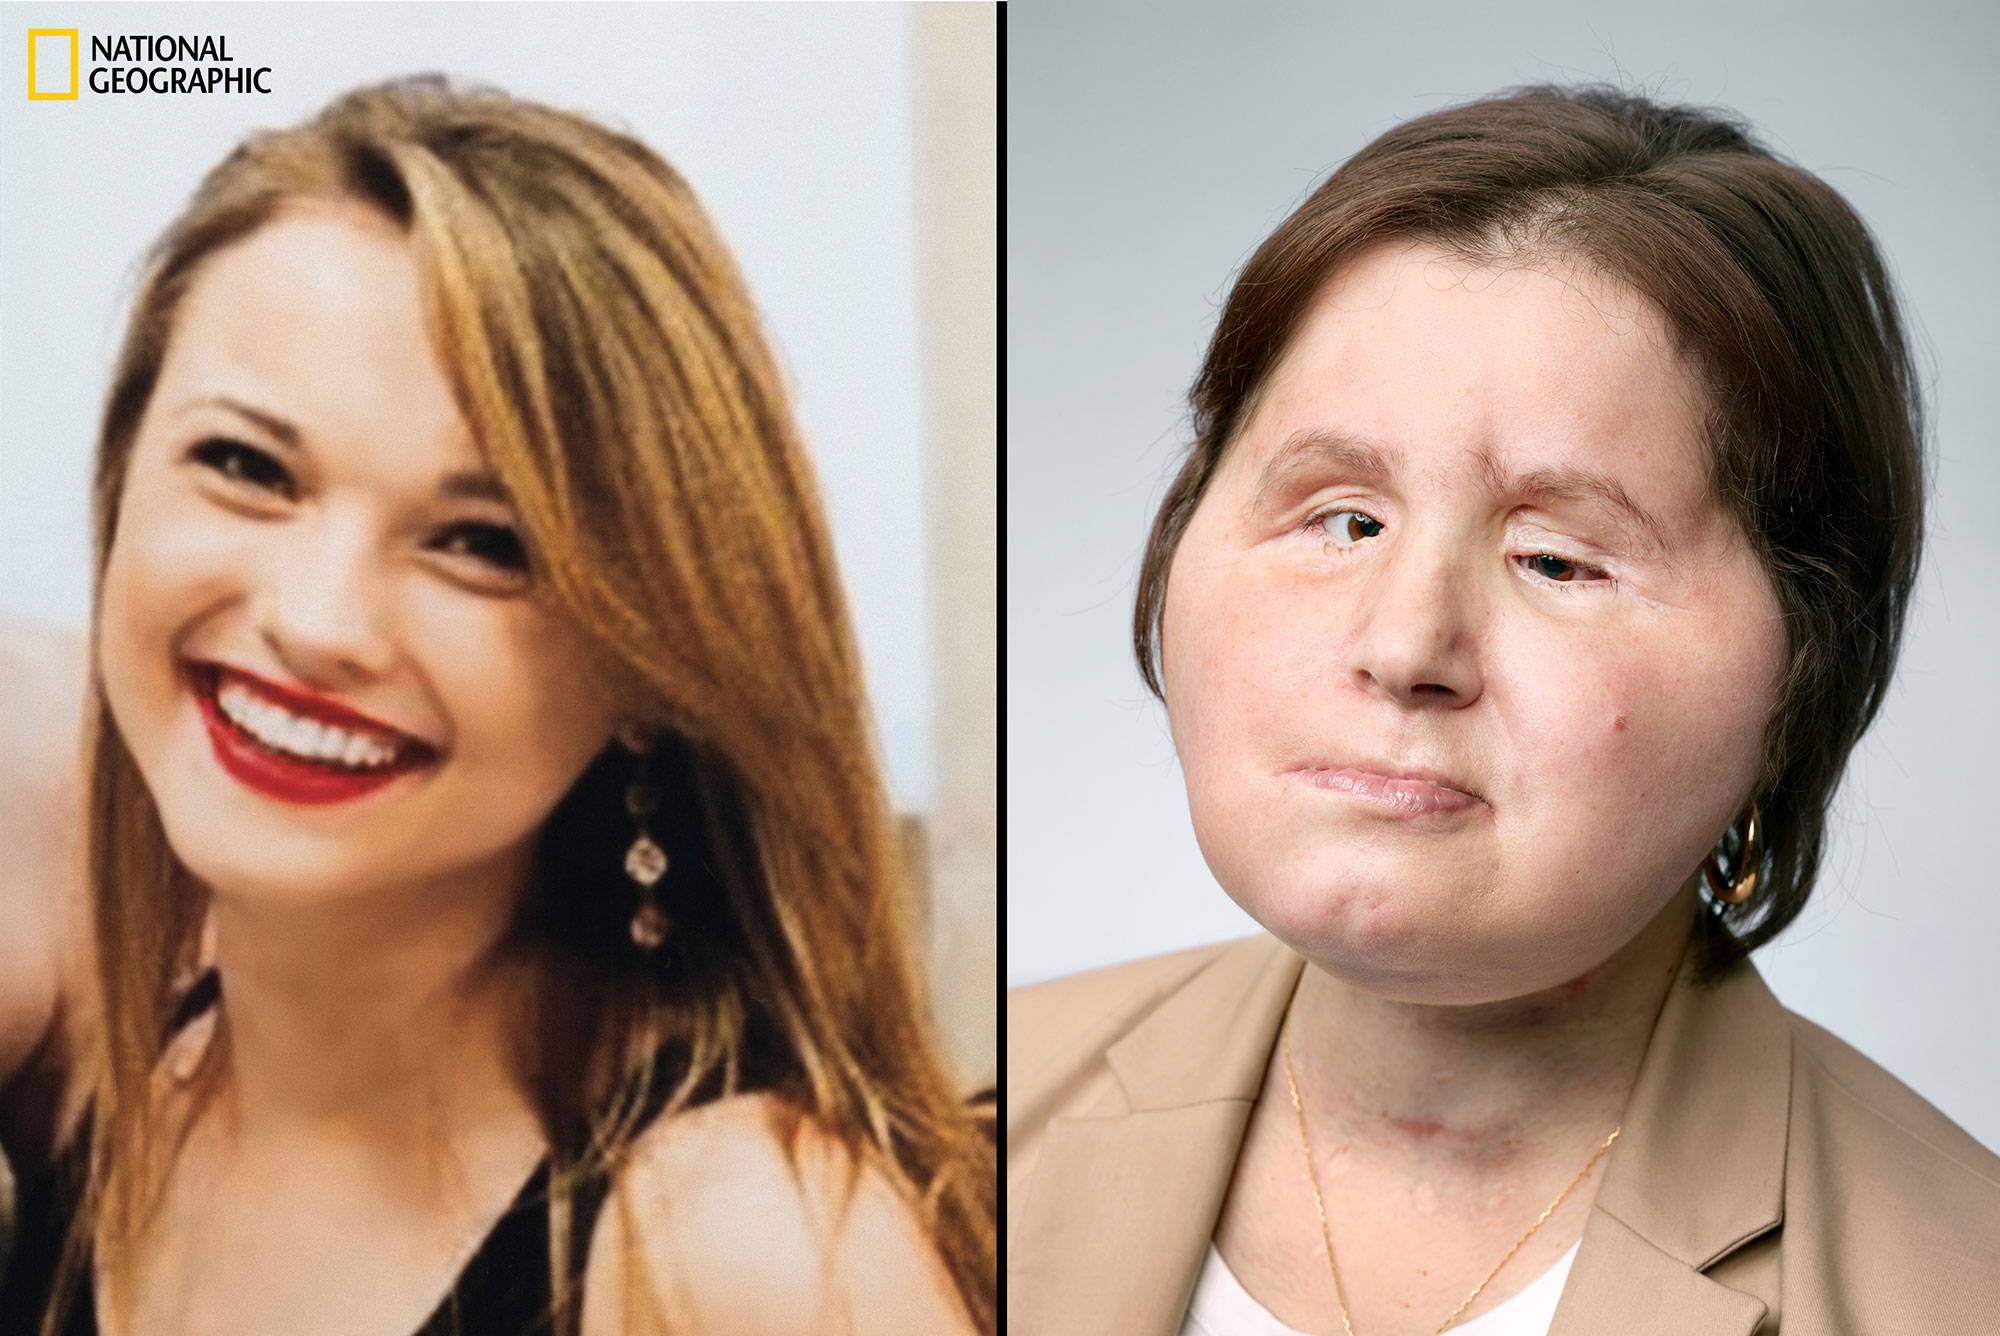 Youngest Face Transplant Recipient in America Shares Her Story: 'I Want to Help Other People'